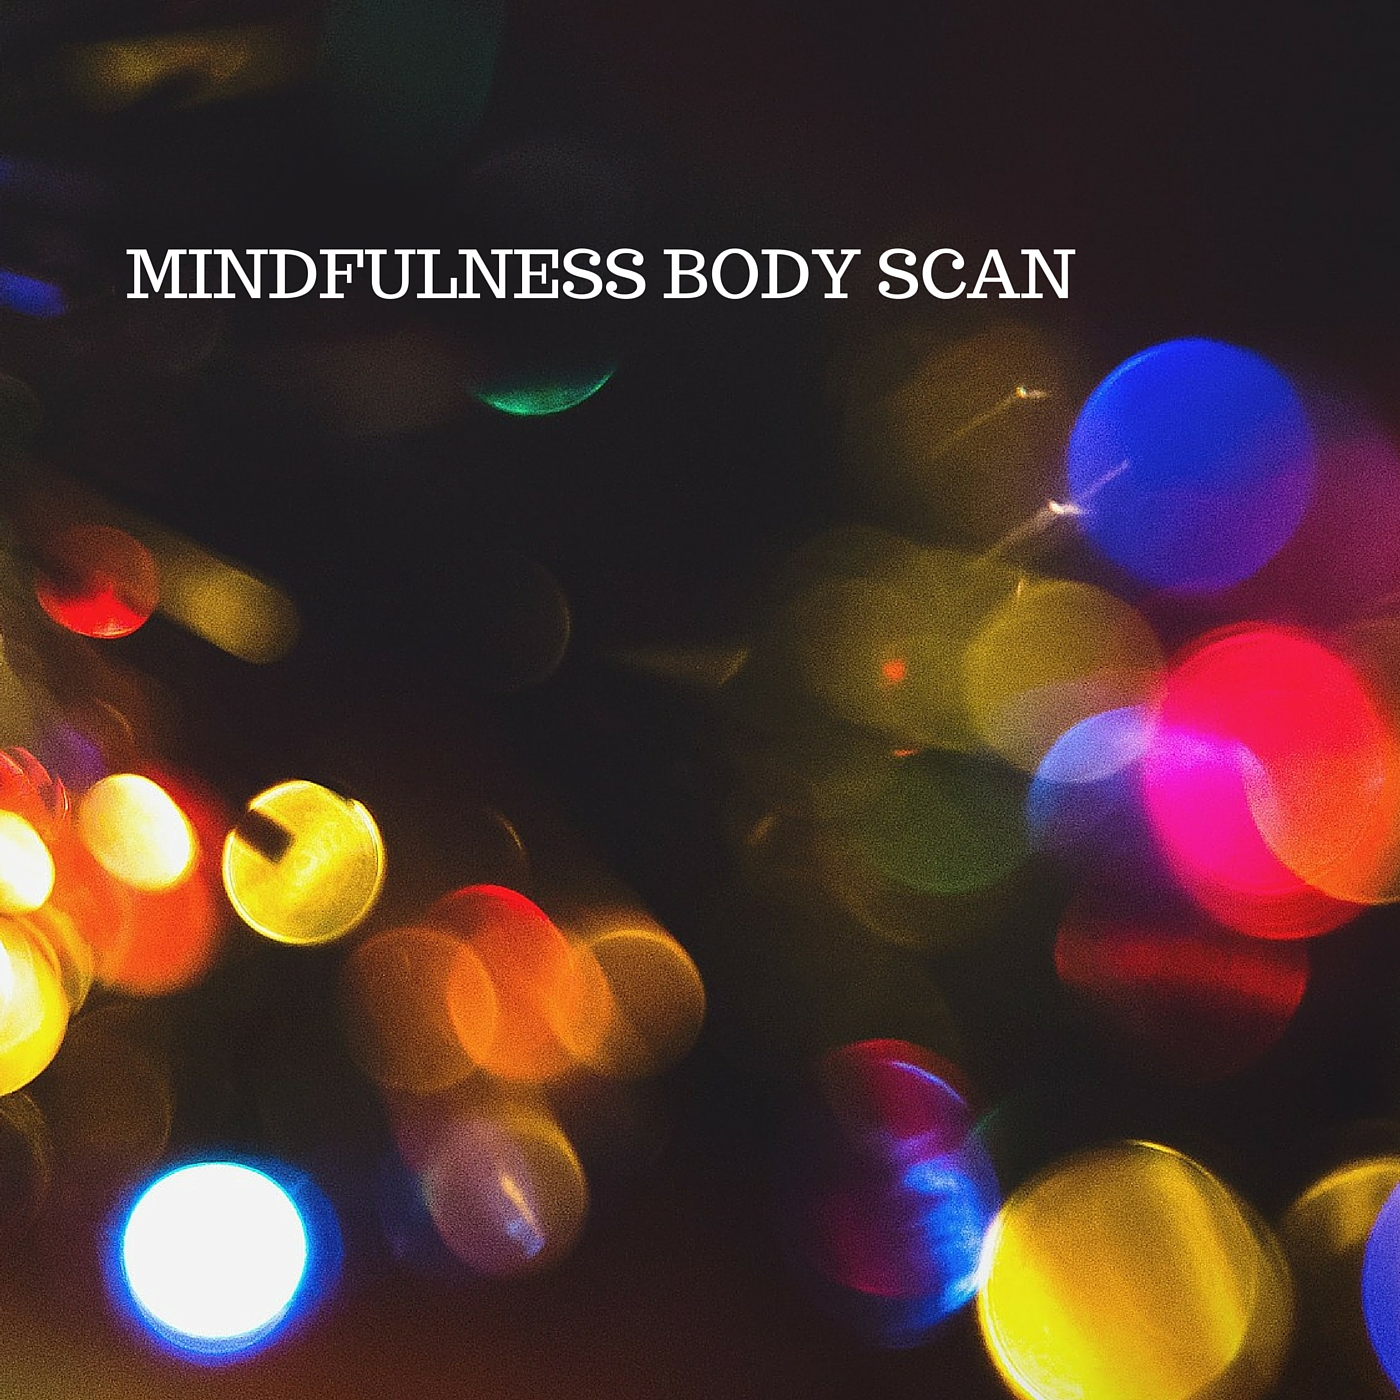 Click on the image to download a free mindfulness body scan meditation. Namaste.